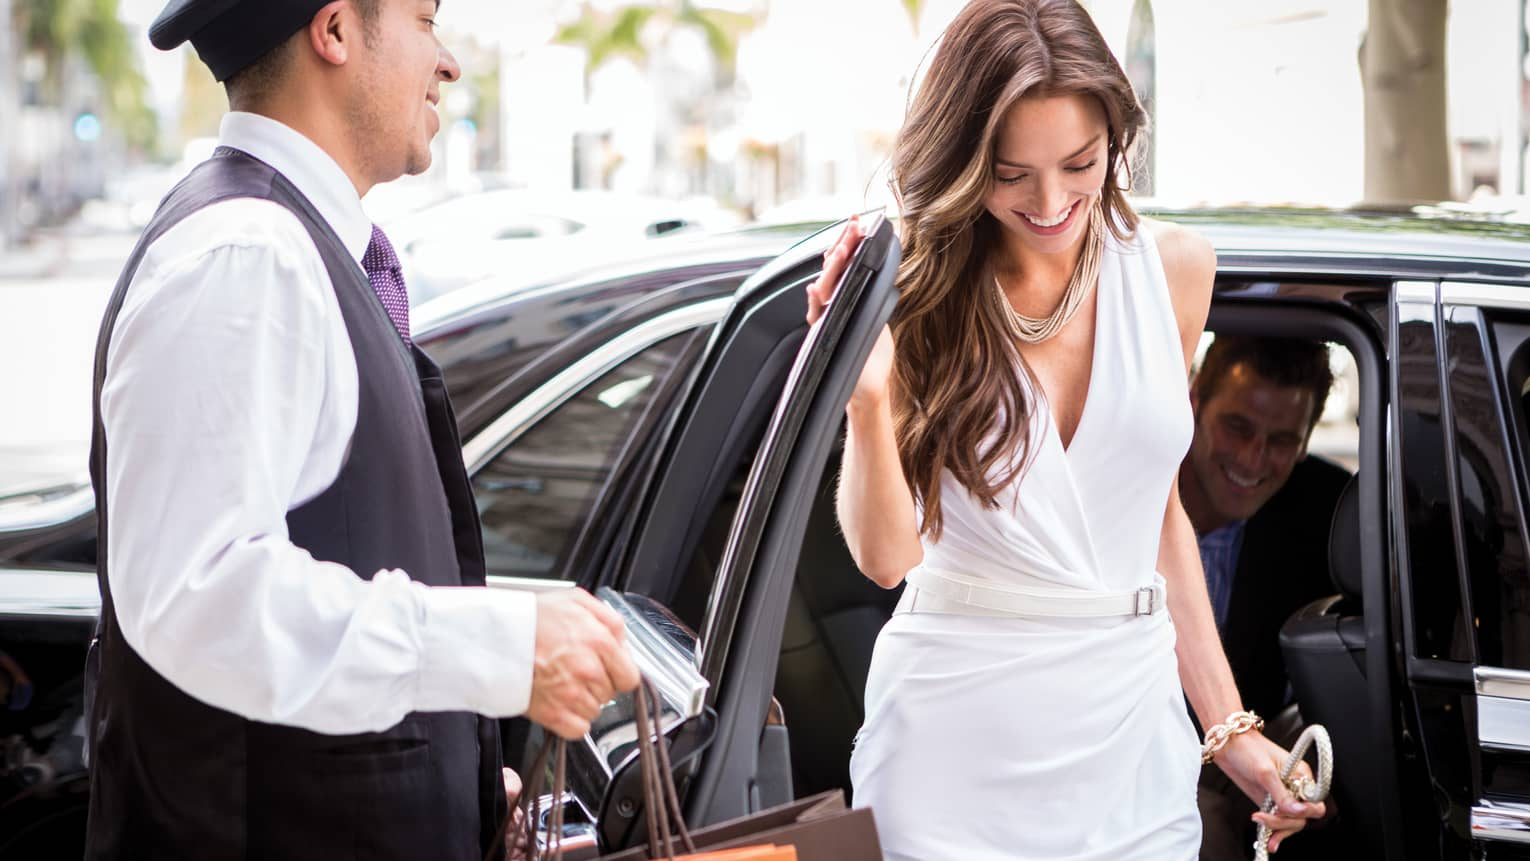 Woman wearing white dress steps out of luxury car, doorman holds door